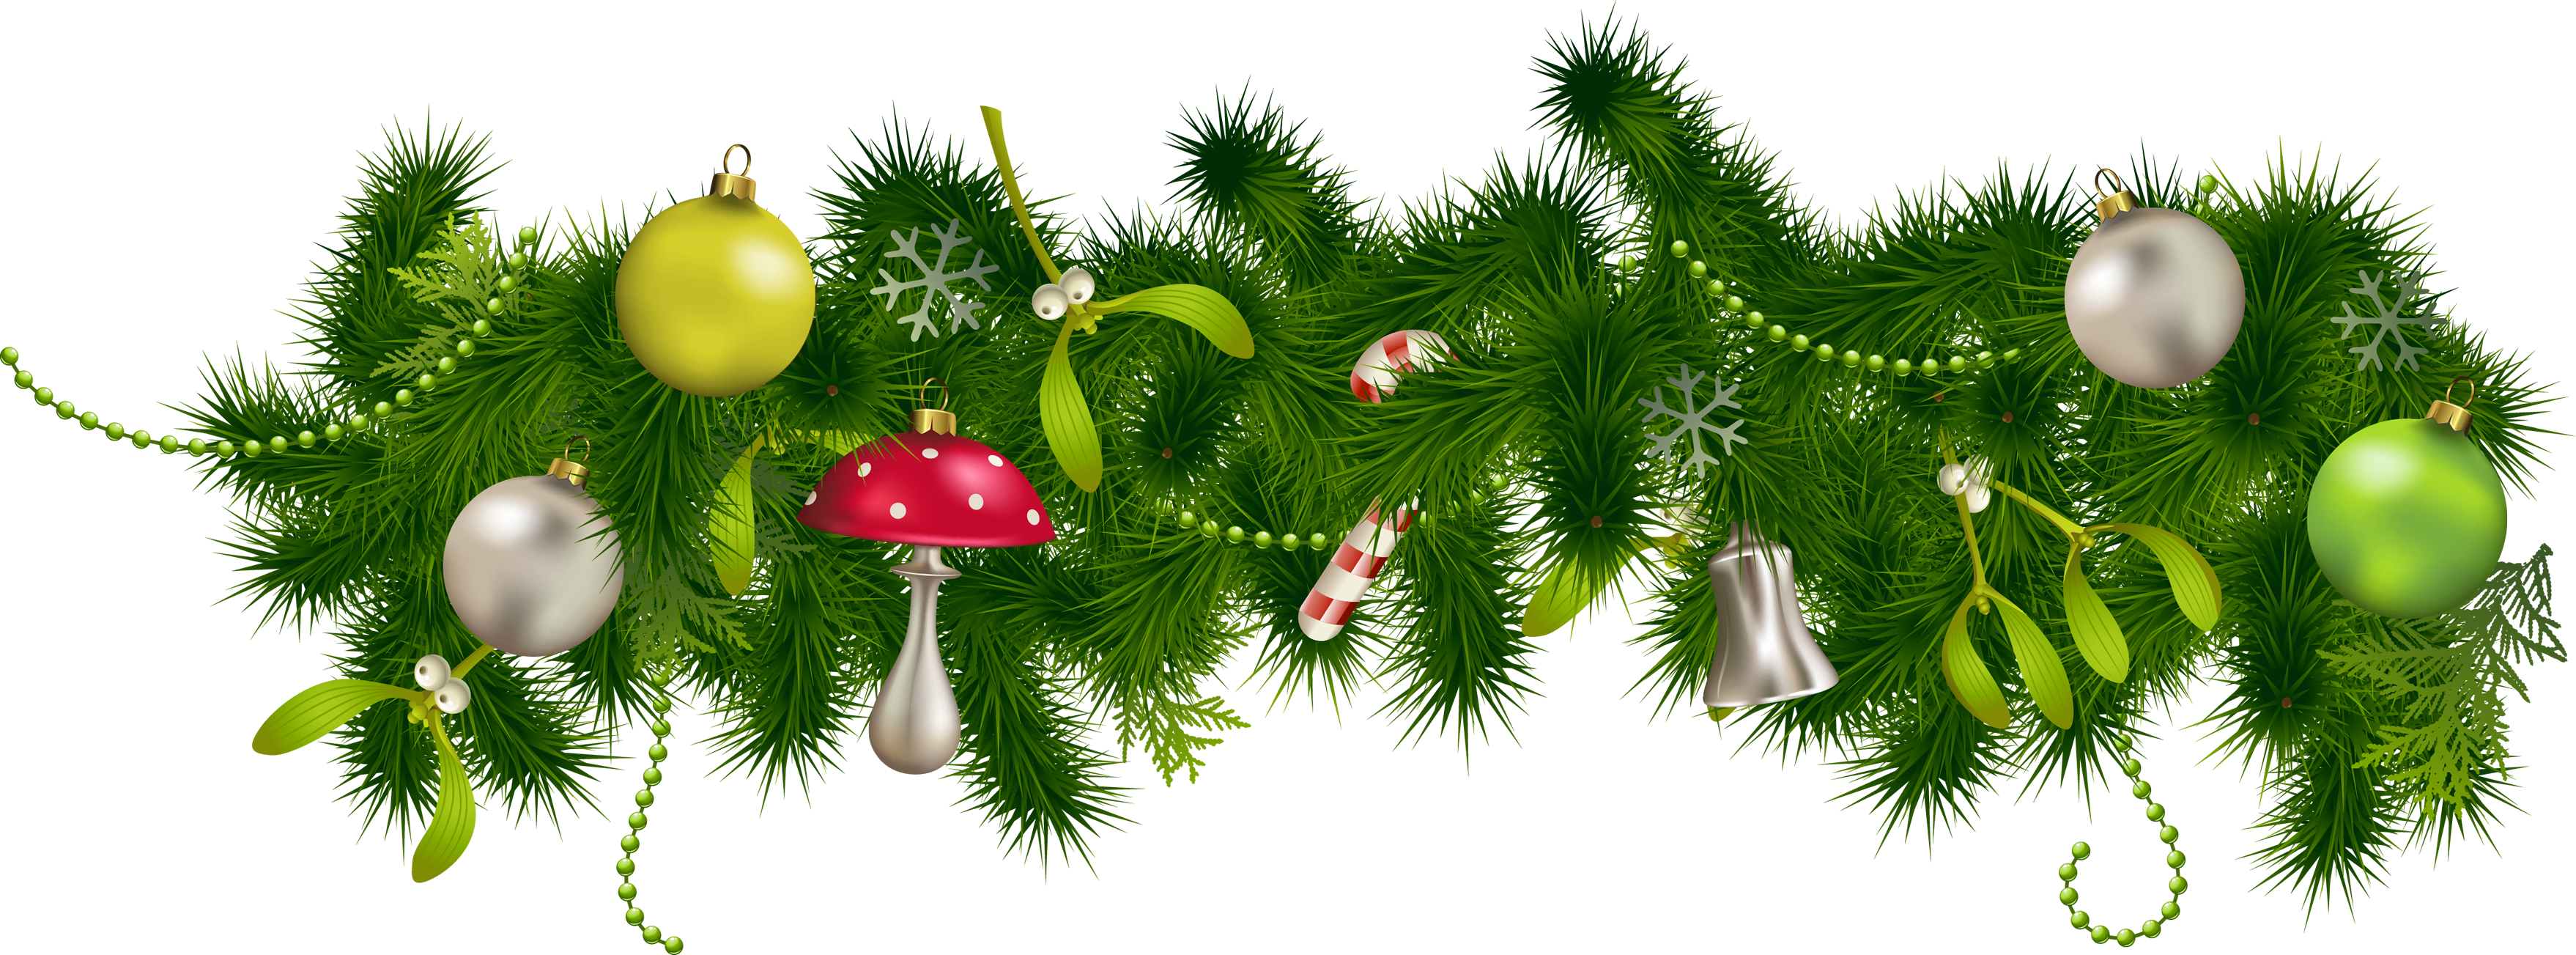 Focus on the holidays clipart high res png clipart transparent stock Christmas PNG images download clipart transparent stock